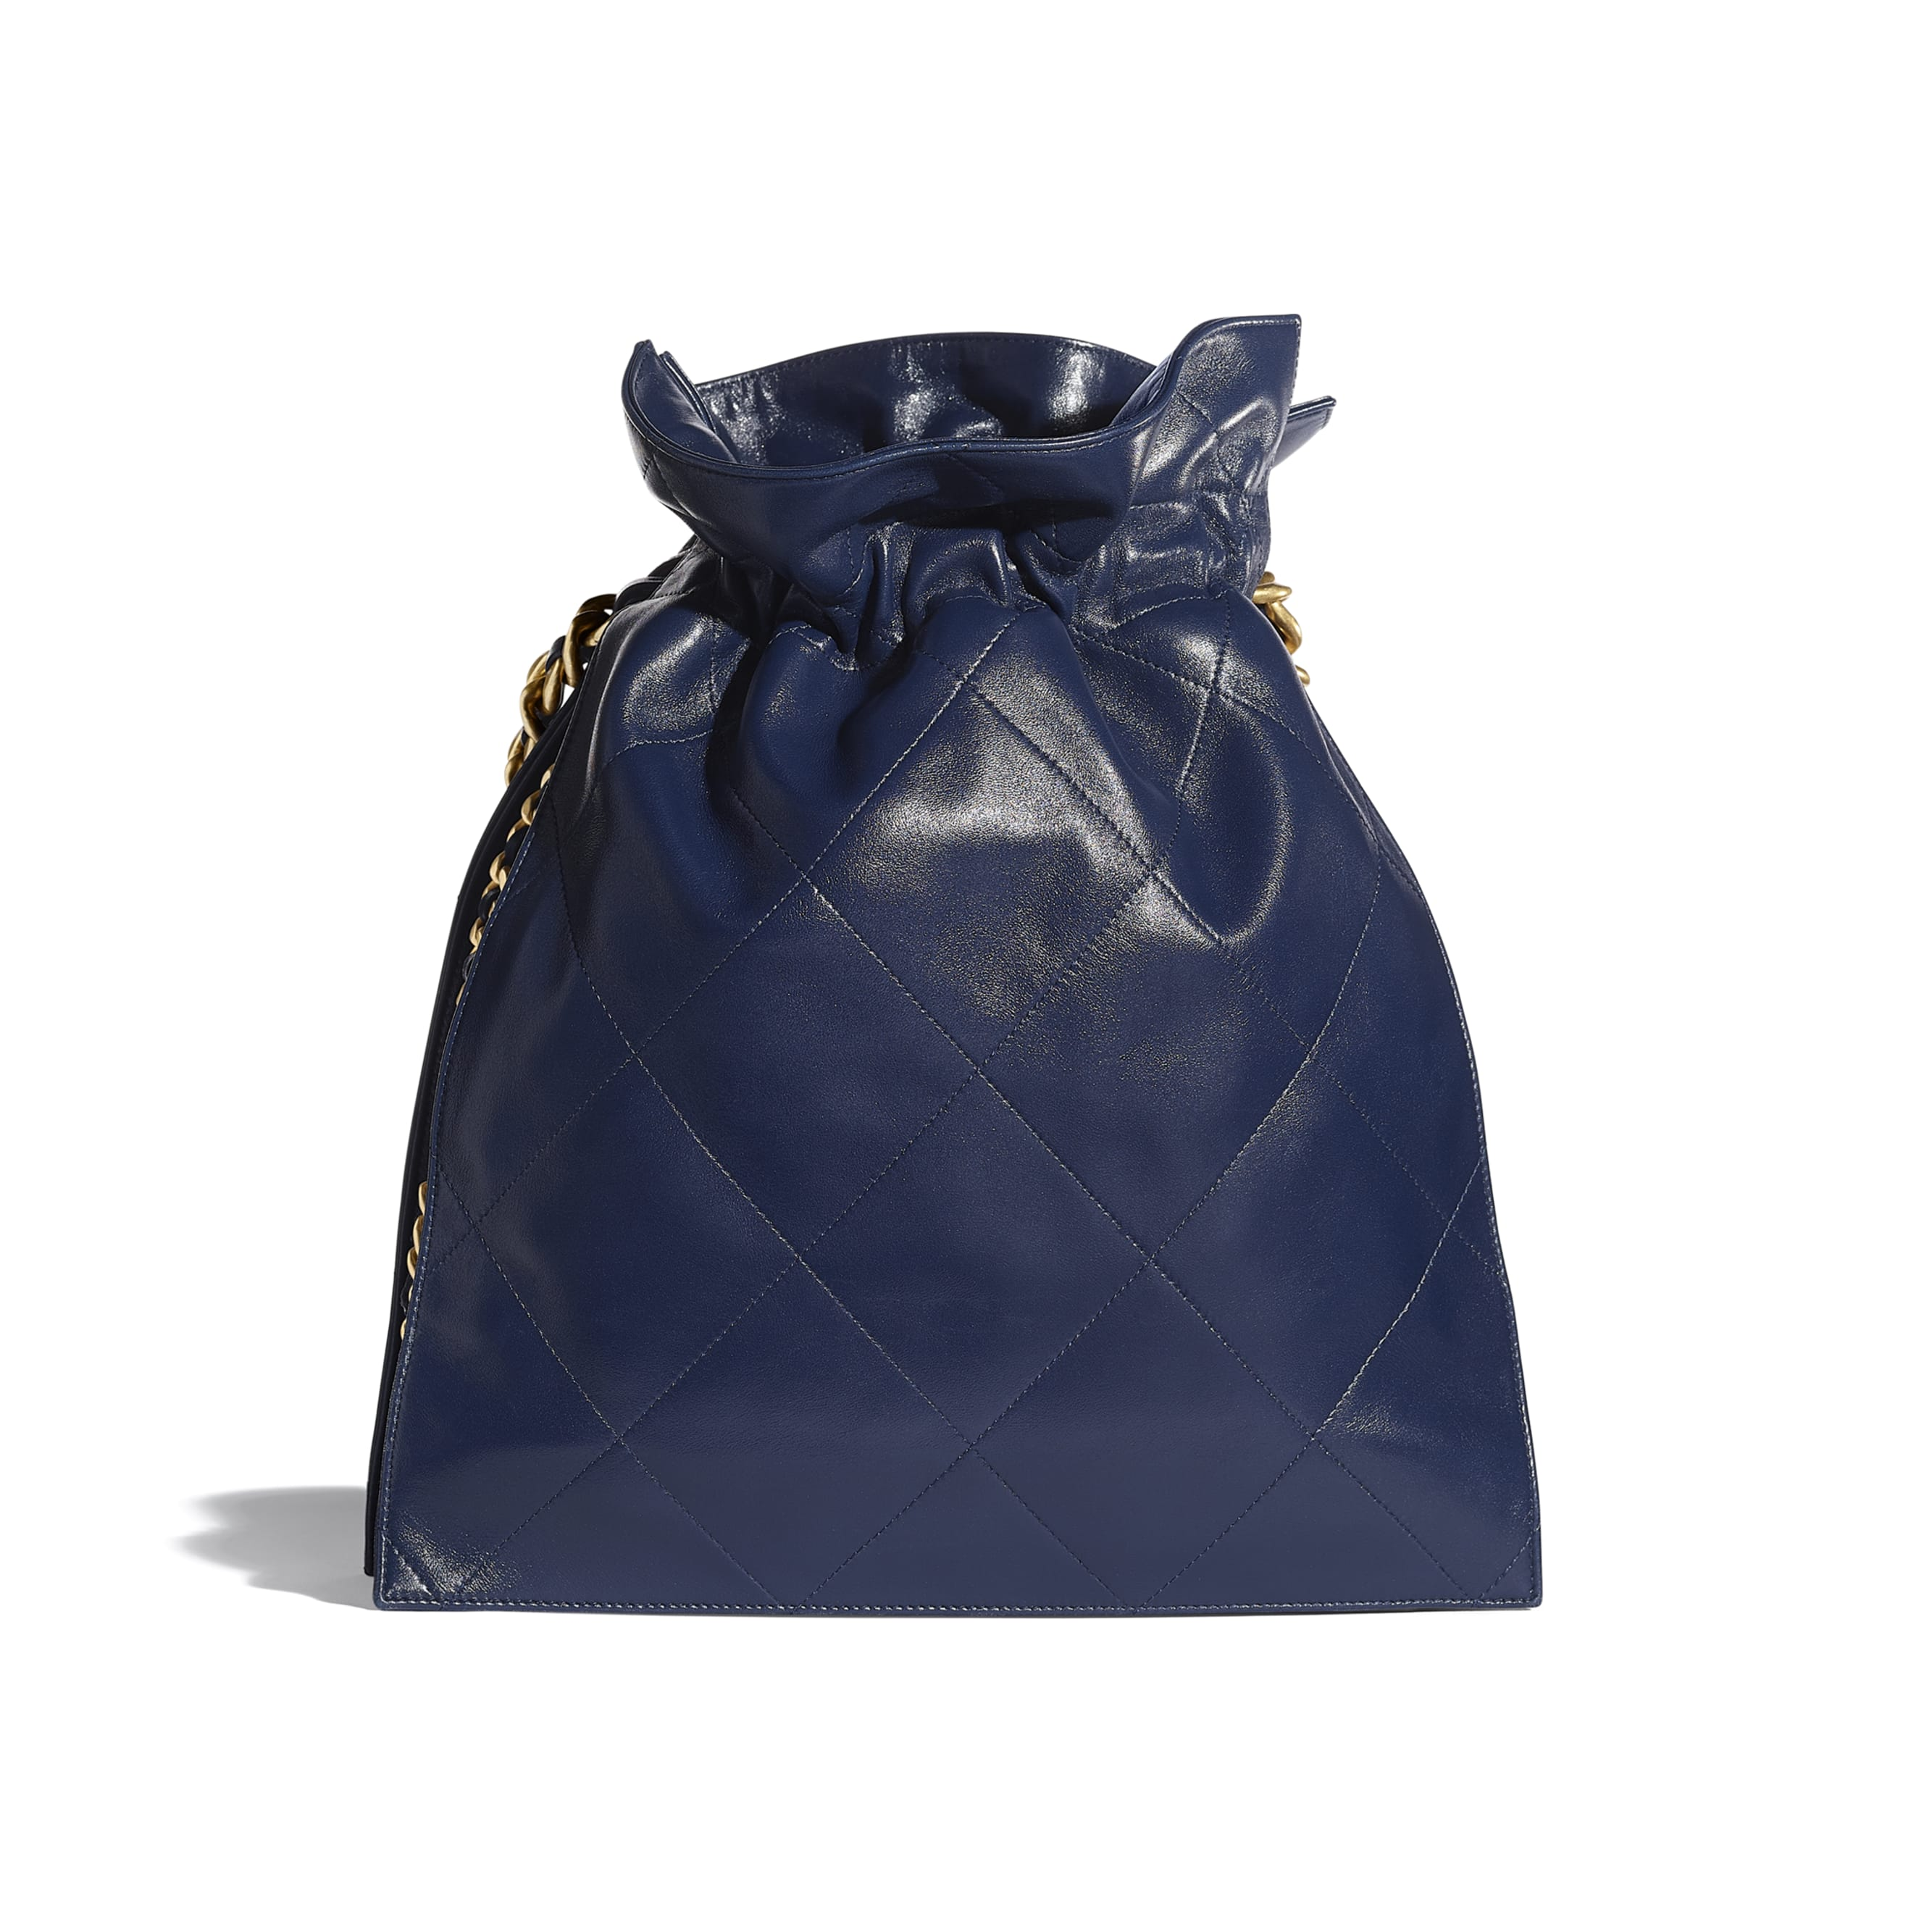 Large Tote - Navy Blue - Shiny Lambskin & Gold-Tone Metal - CHANEL - Alternative view - see standard sized version